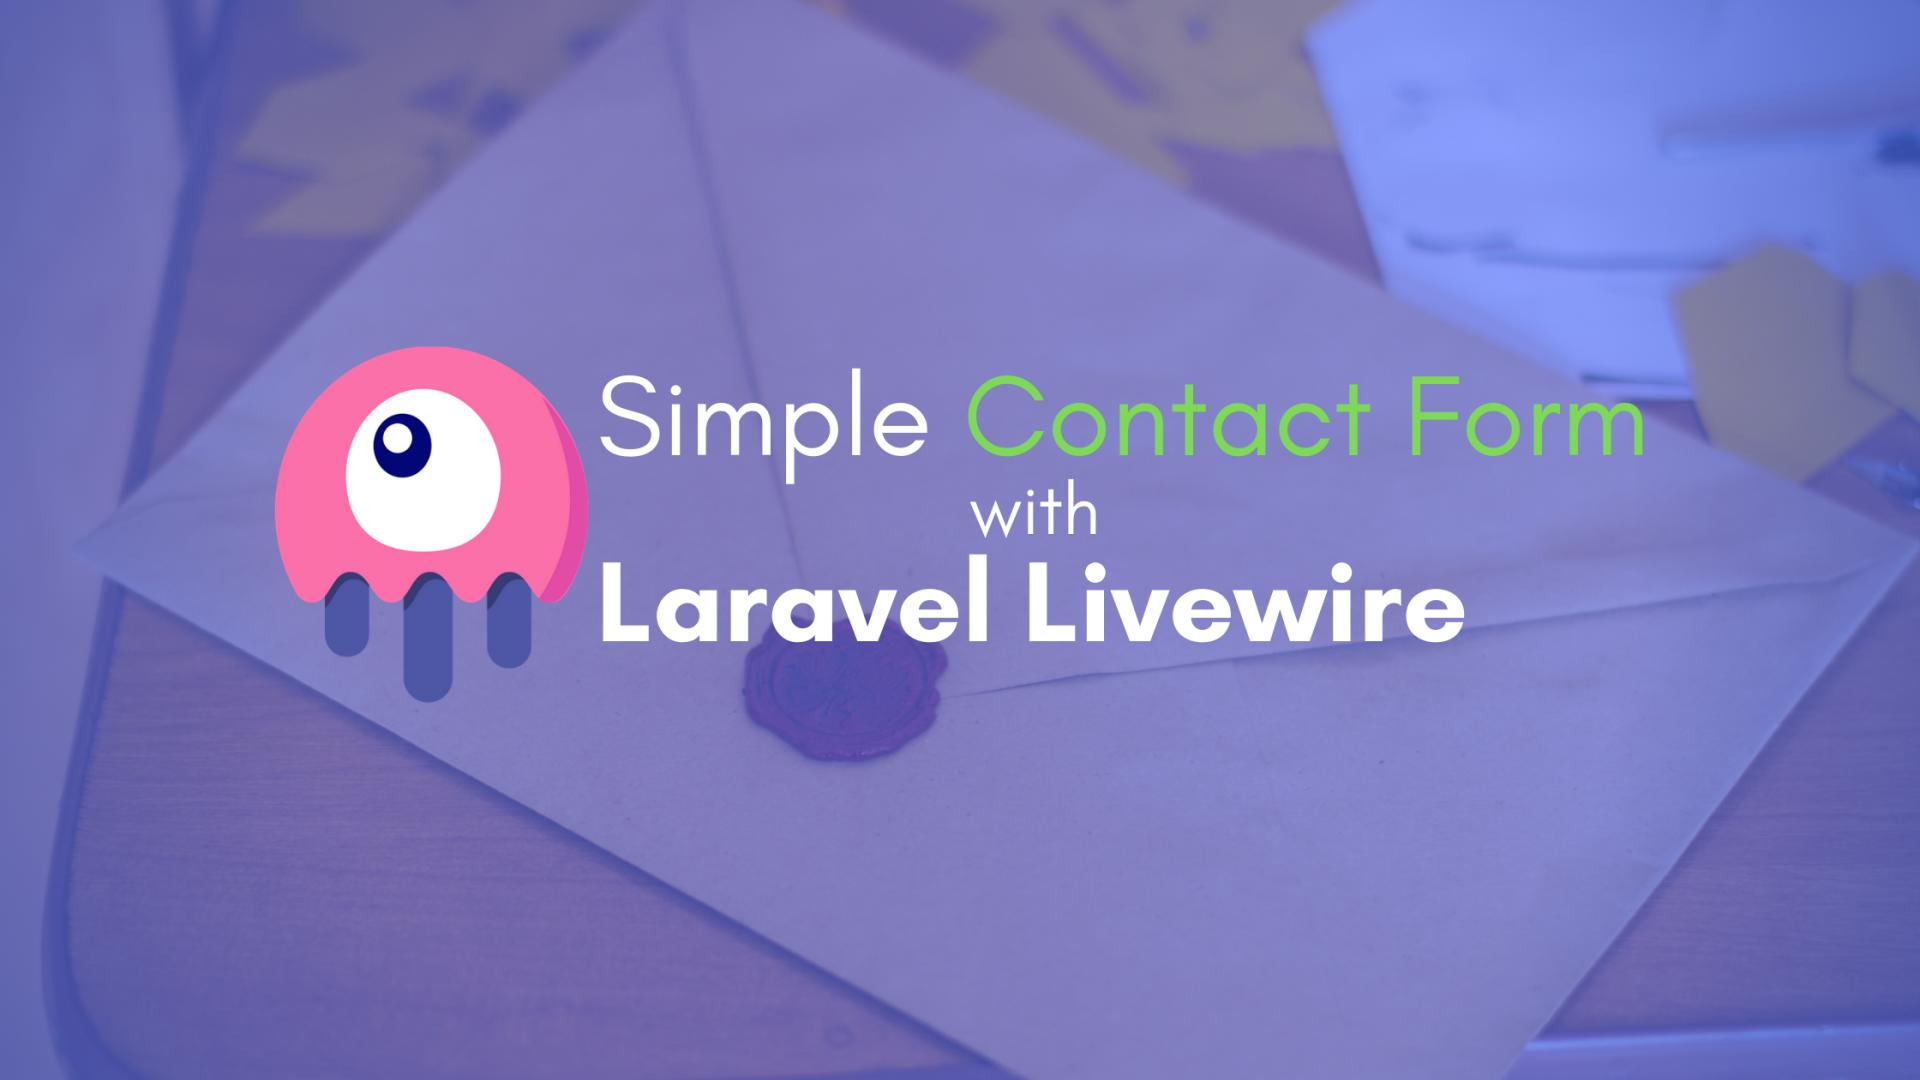 How to create a contact form with Laravel Livewire?